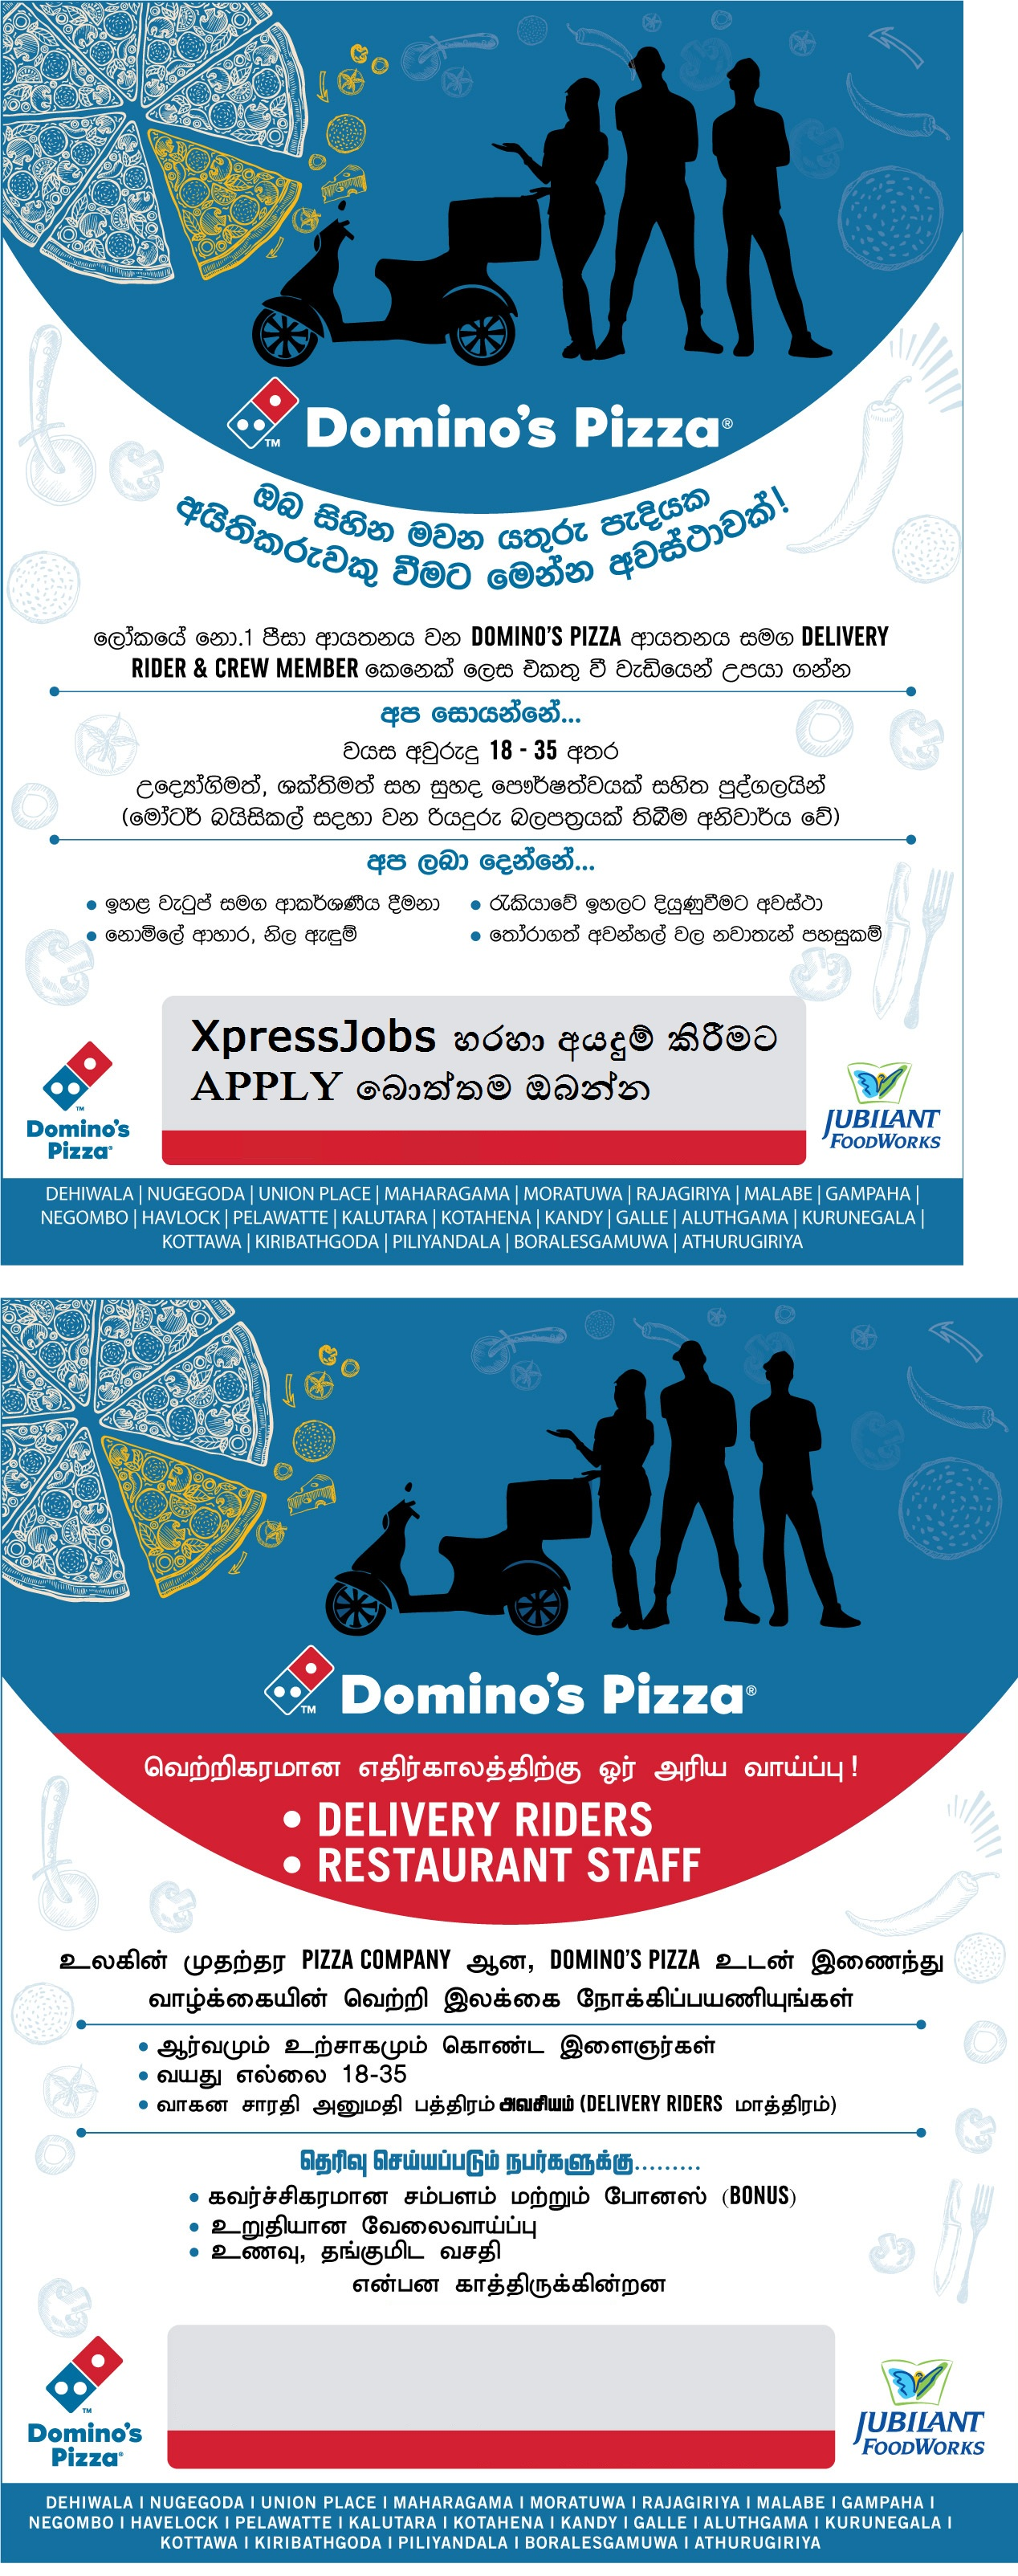 Delivery Riders - Male (Full-Time/Part-Time) - Domino's